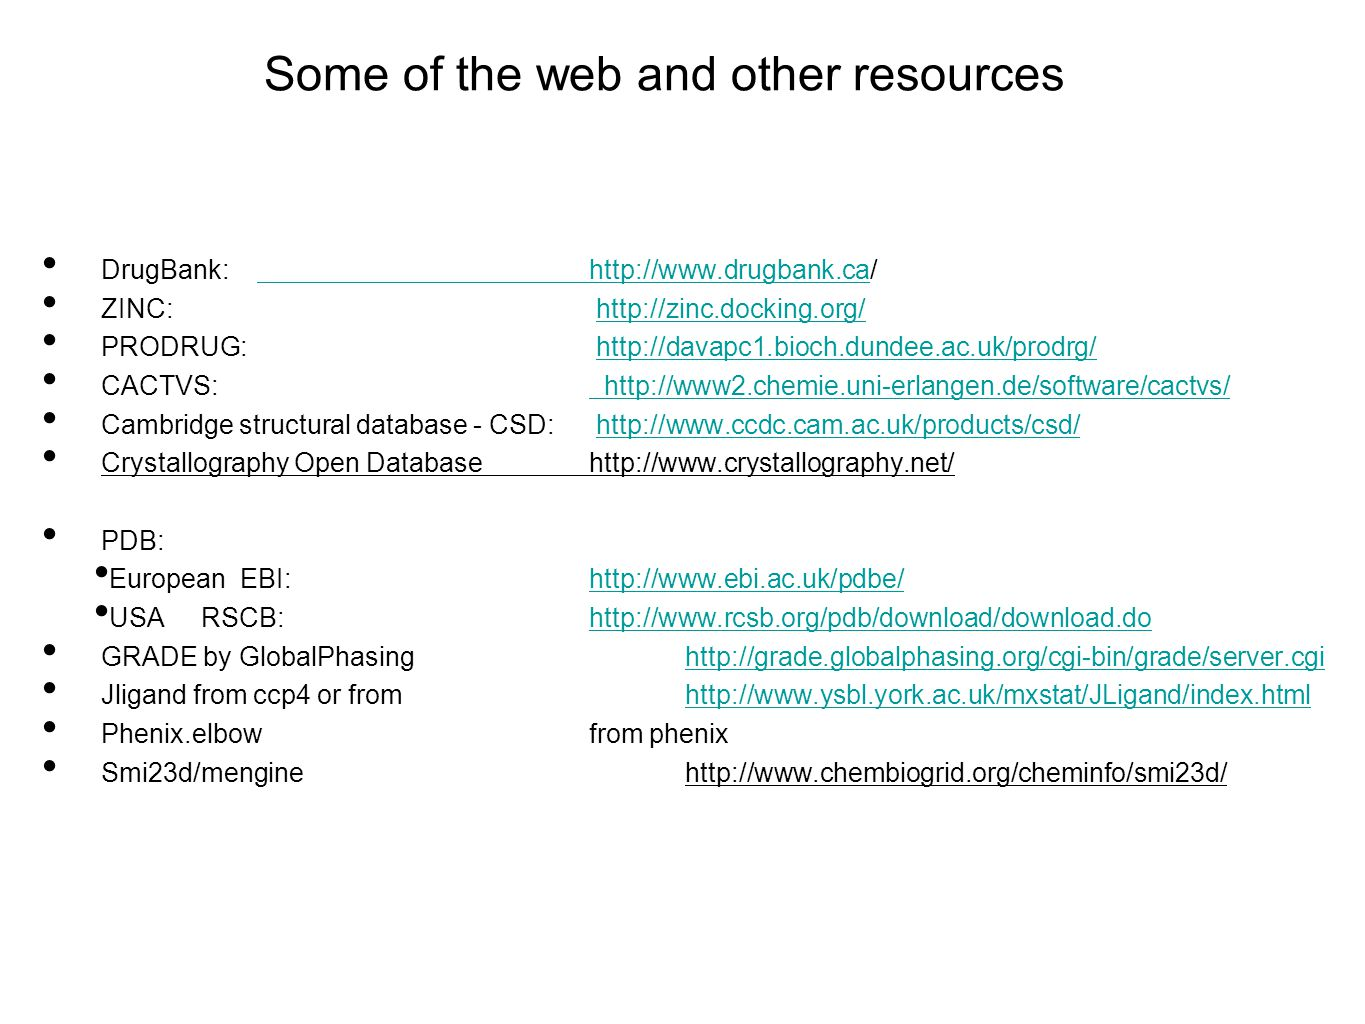 Some of the web and other resources DrugBank: http://www.drugbank.ca/ http://www.drugbank.ca ZINC: http://zinc.docking.org/http://zinc.docking.org/ PR